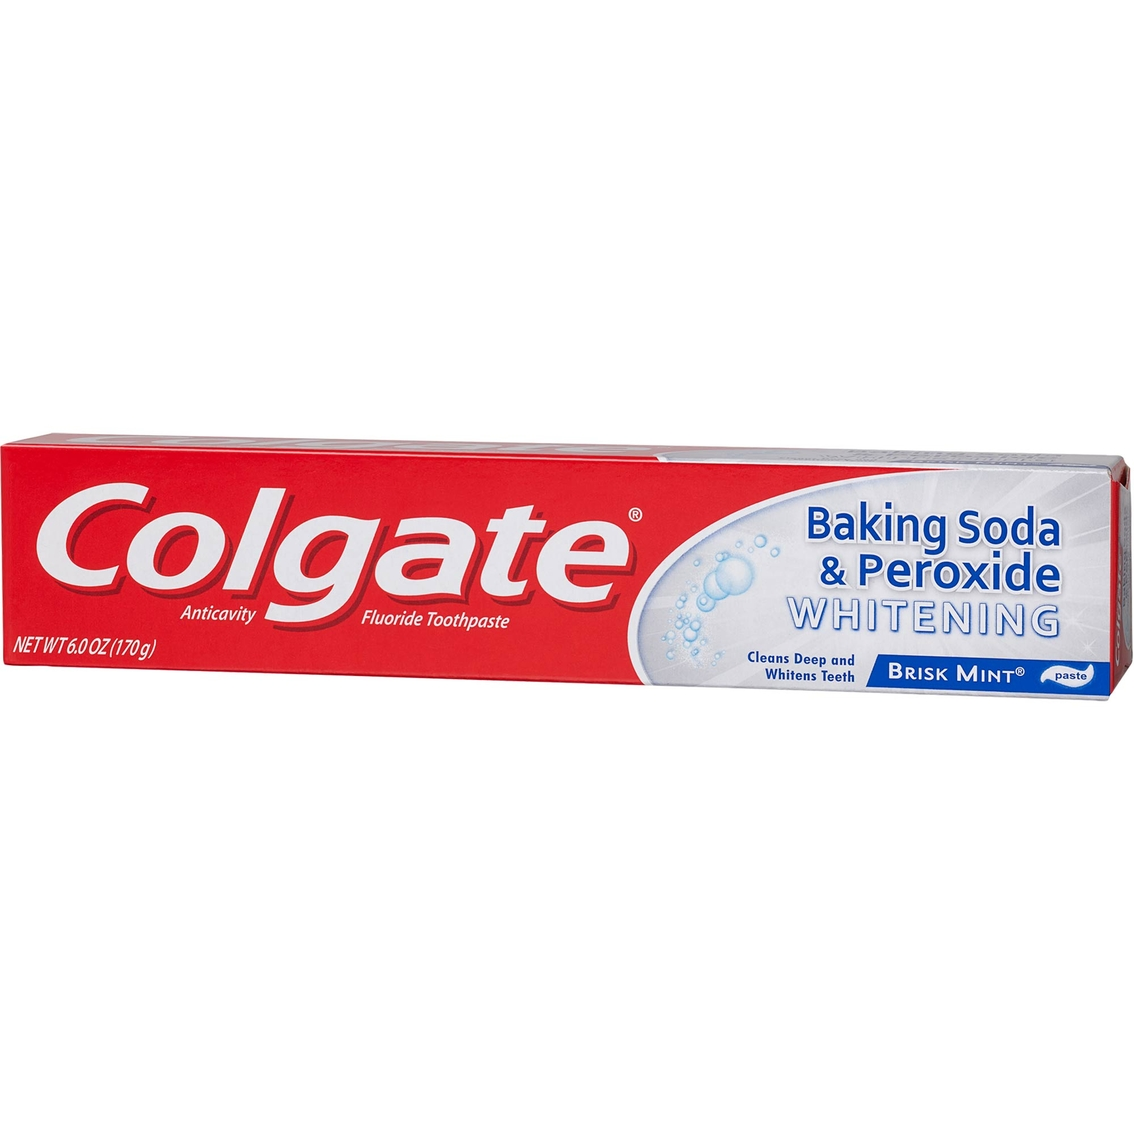 Colgate Whitening Toothpaste With Baking Soda And Peroxide Brisk